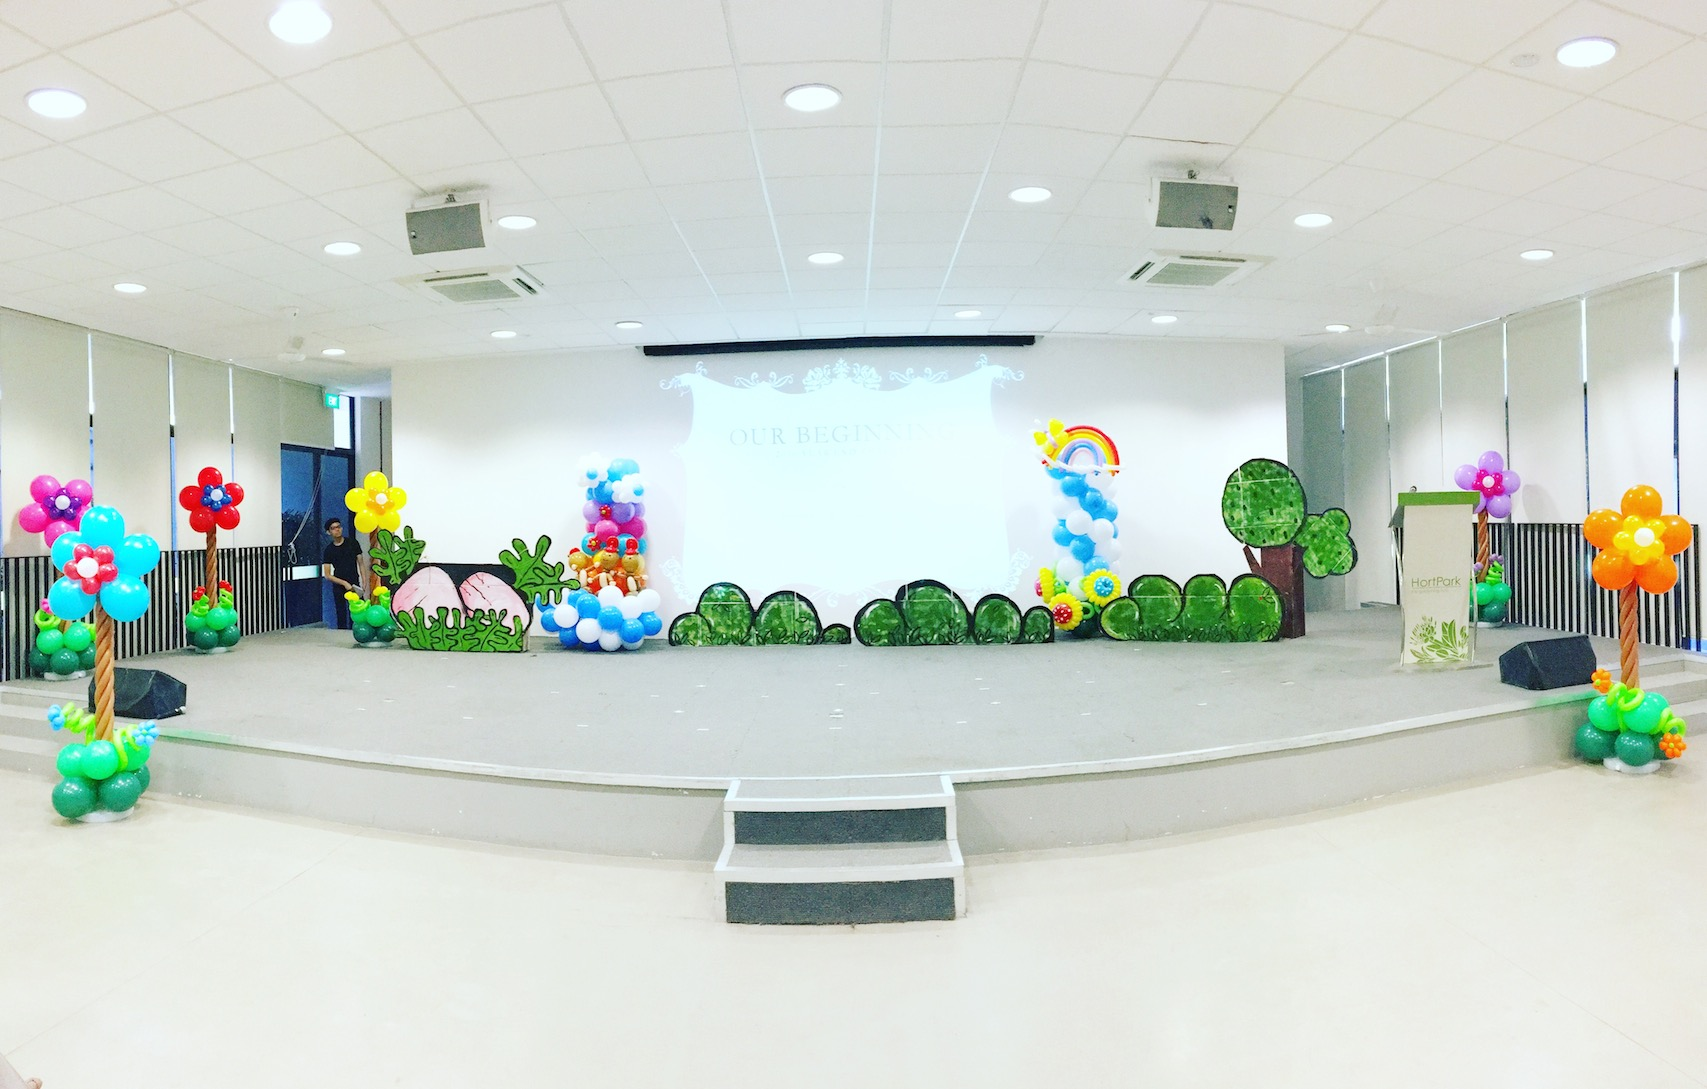 Stage flower balloon decorations that balloons for Balloon decoration for stage